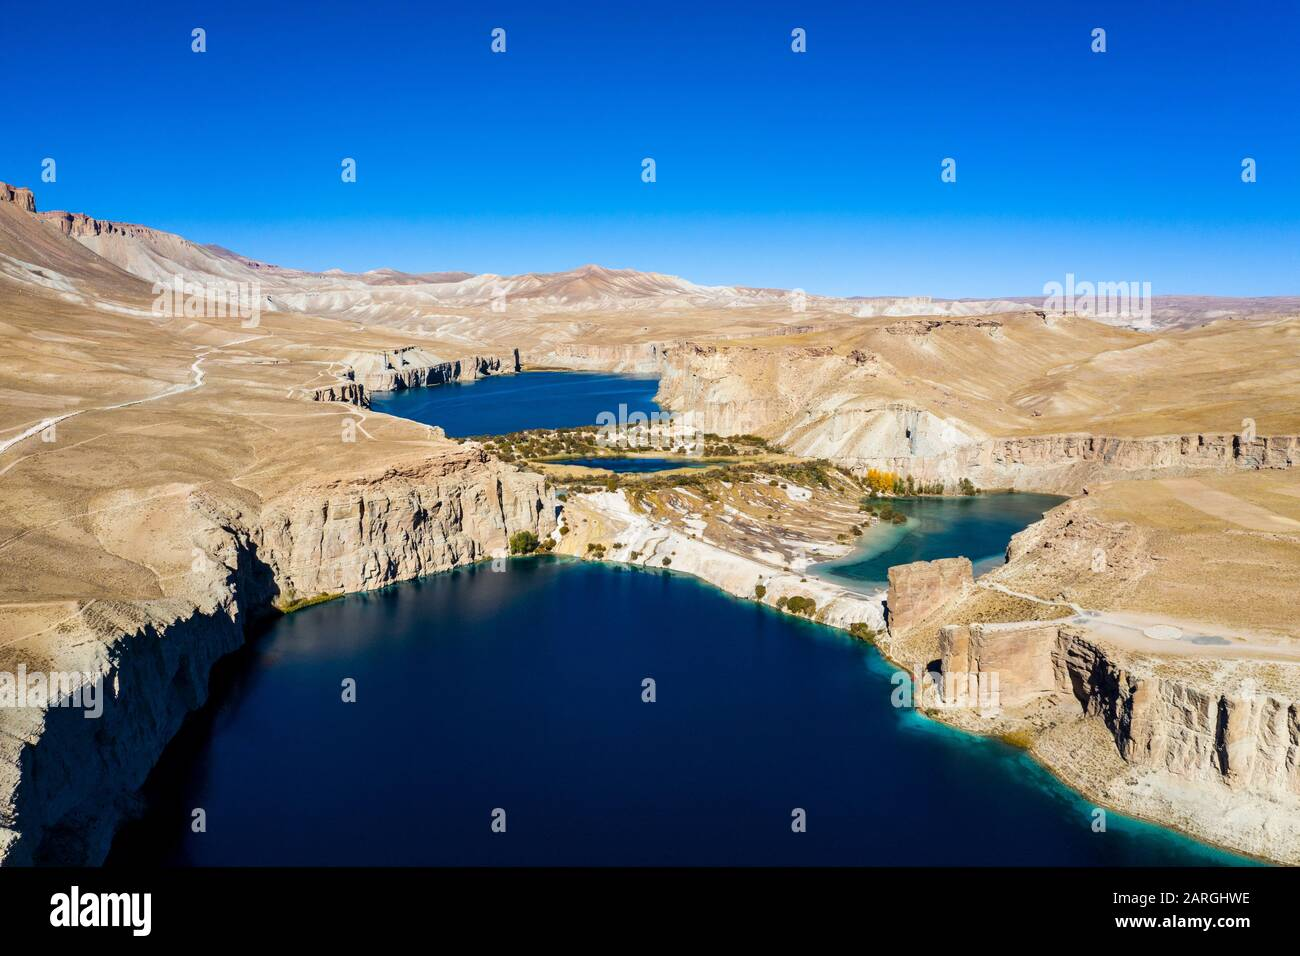 Snow capped mountain scenery at sunset in the Band-E-Amir National Park, Afghanistan, Asia Stock Photo